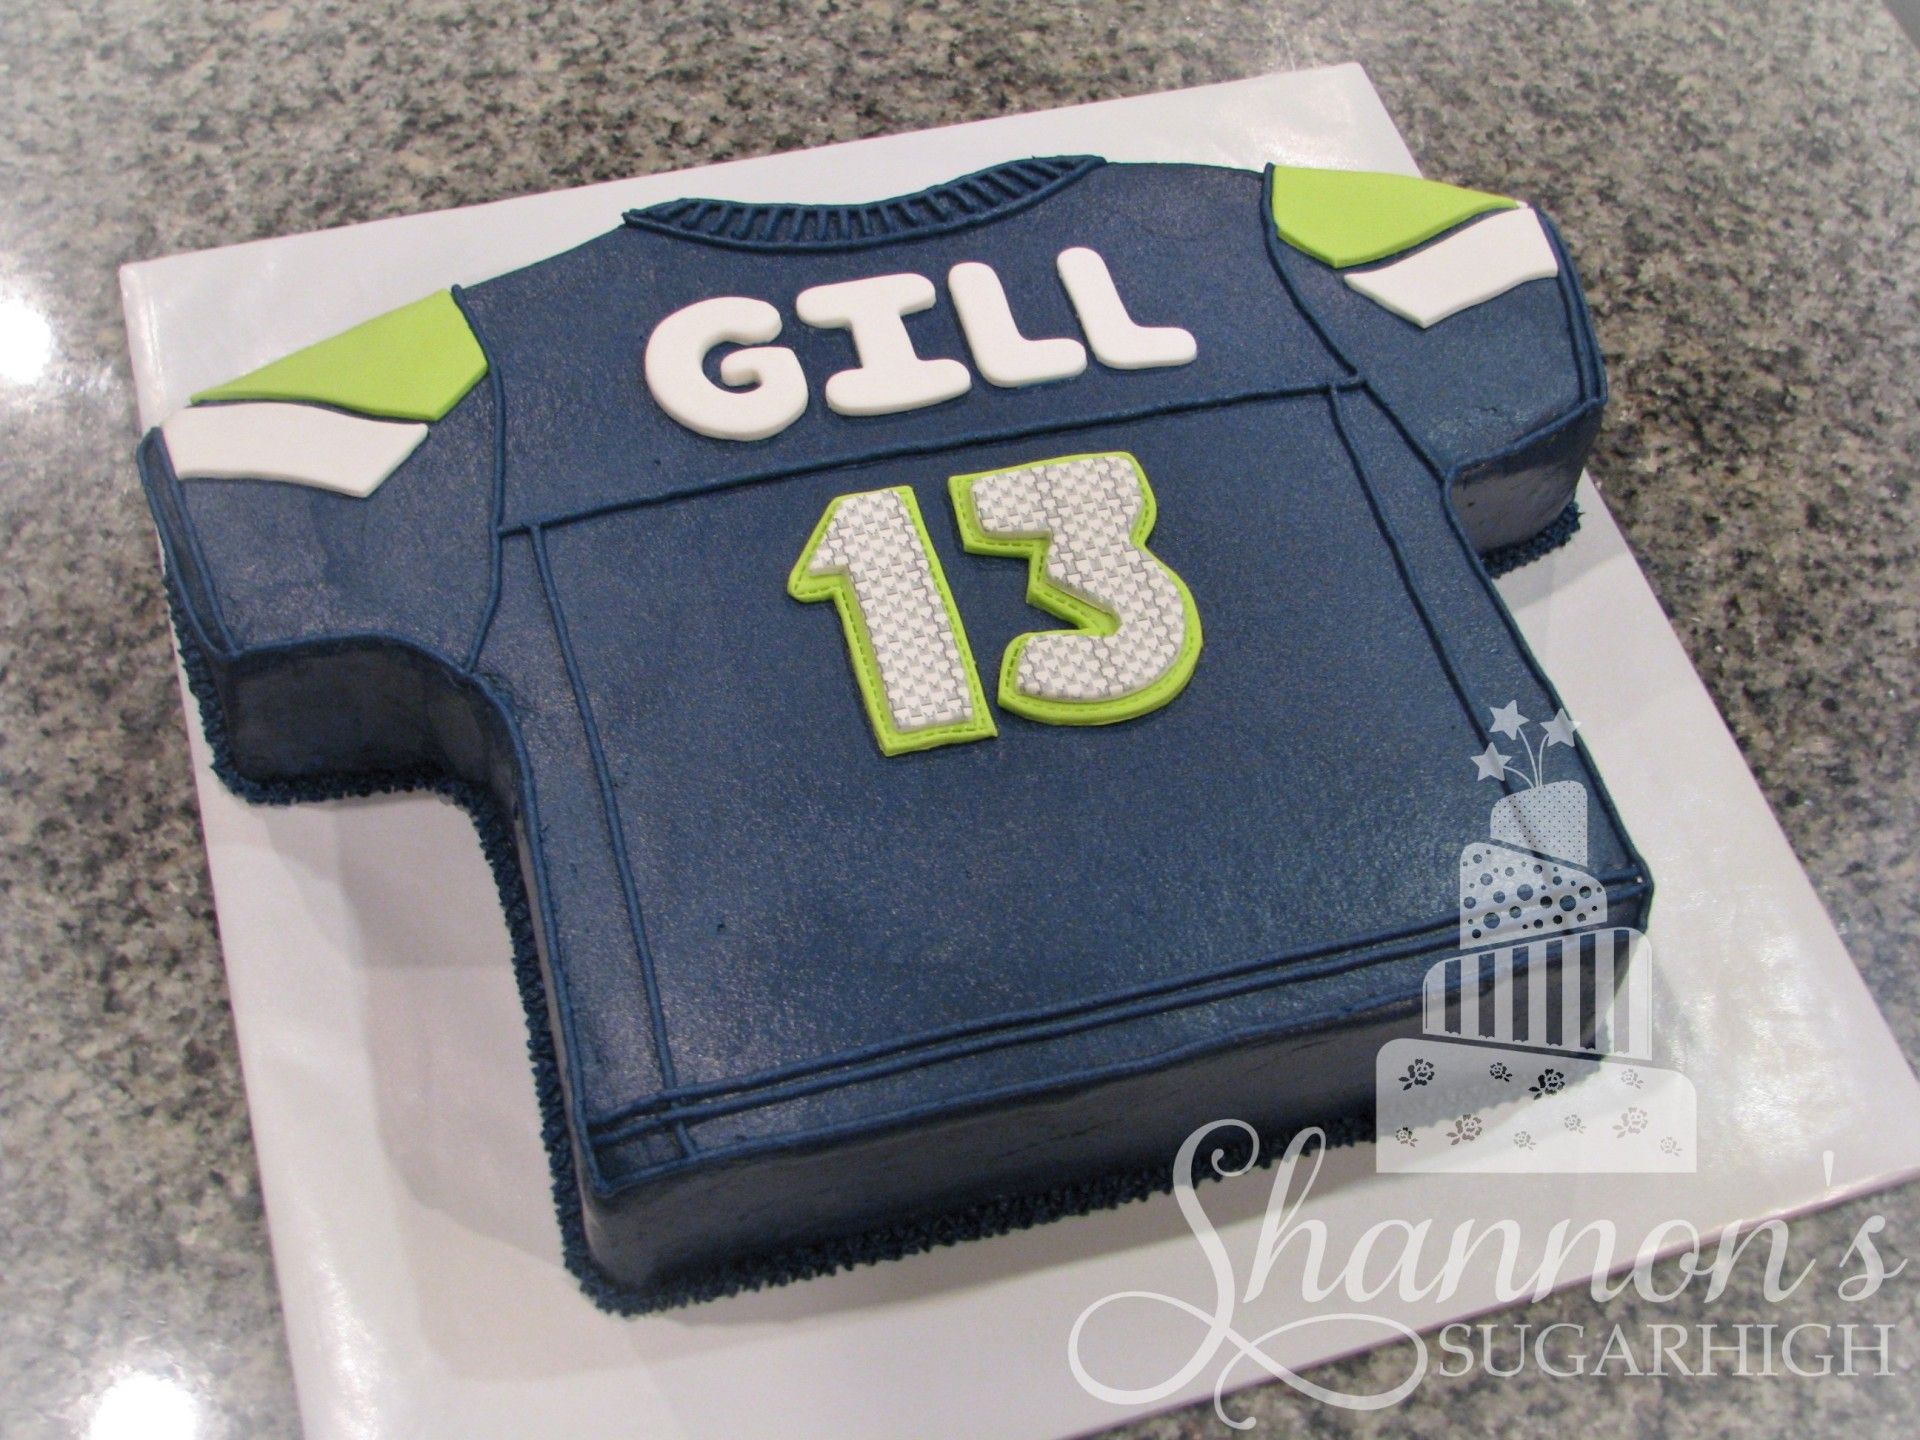 Seattle Seahawks Football Jersey Cake For A Boy Turning 13